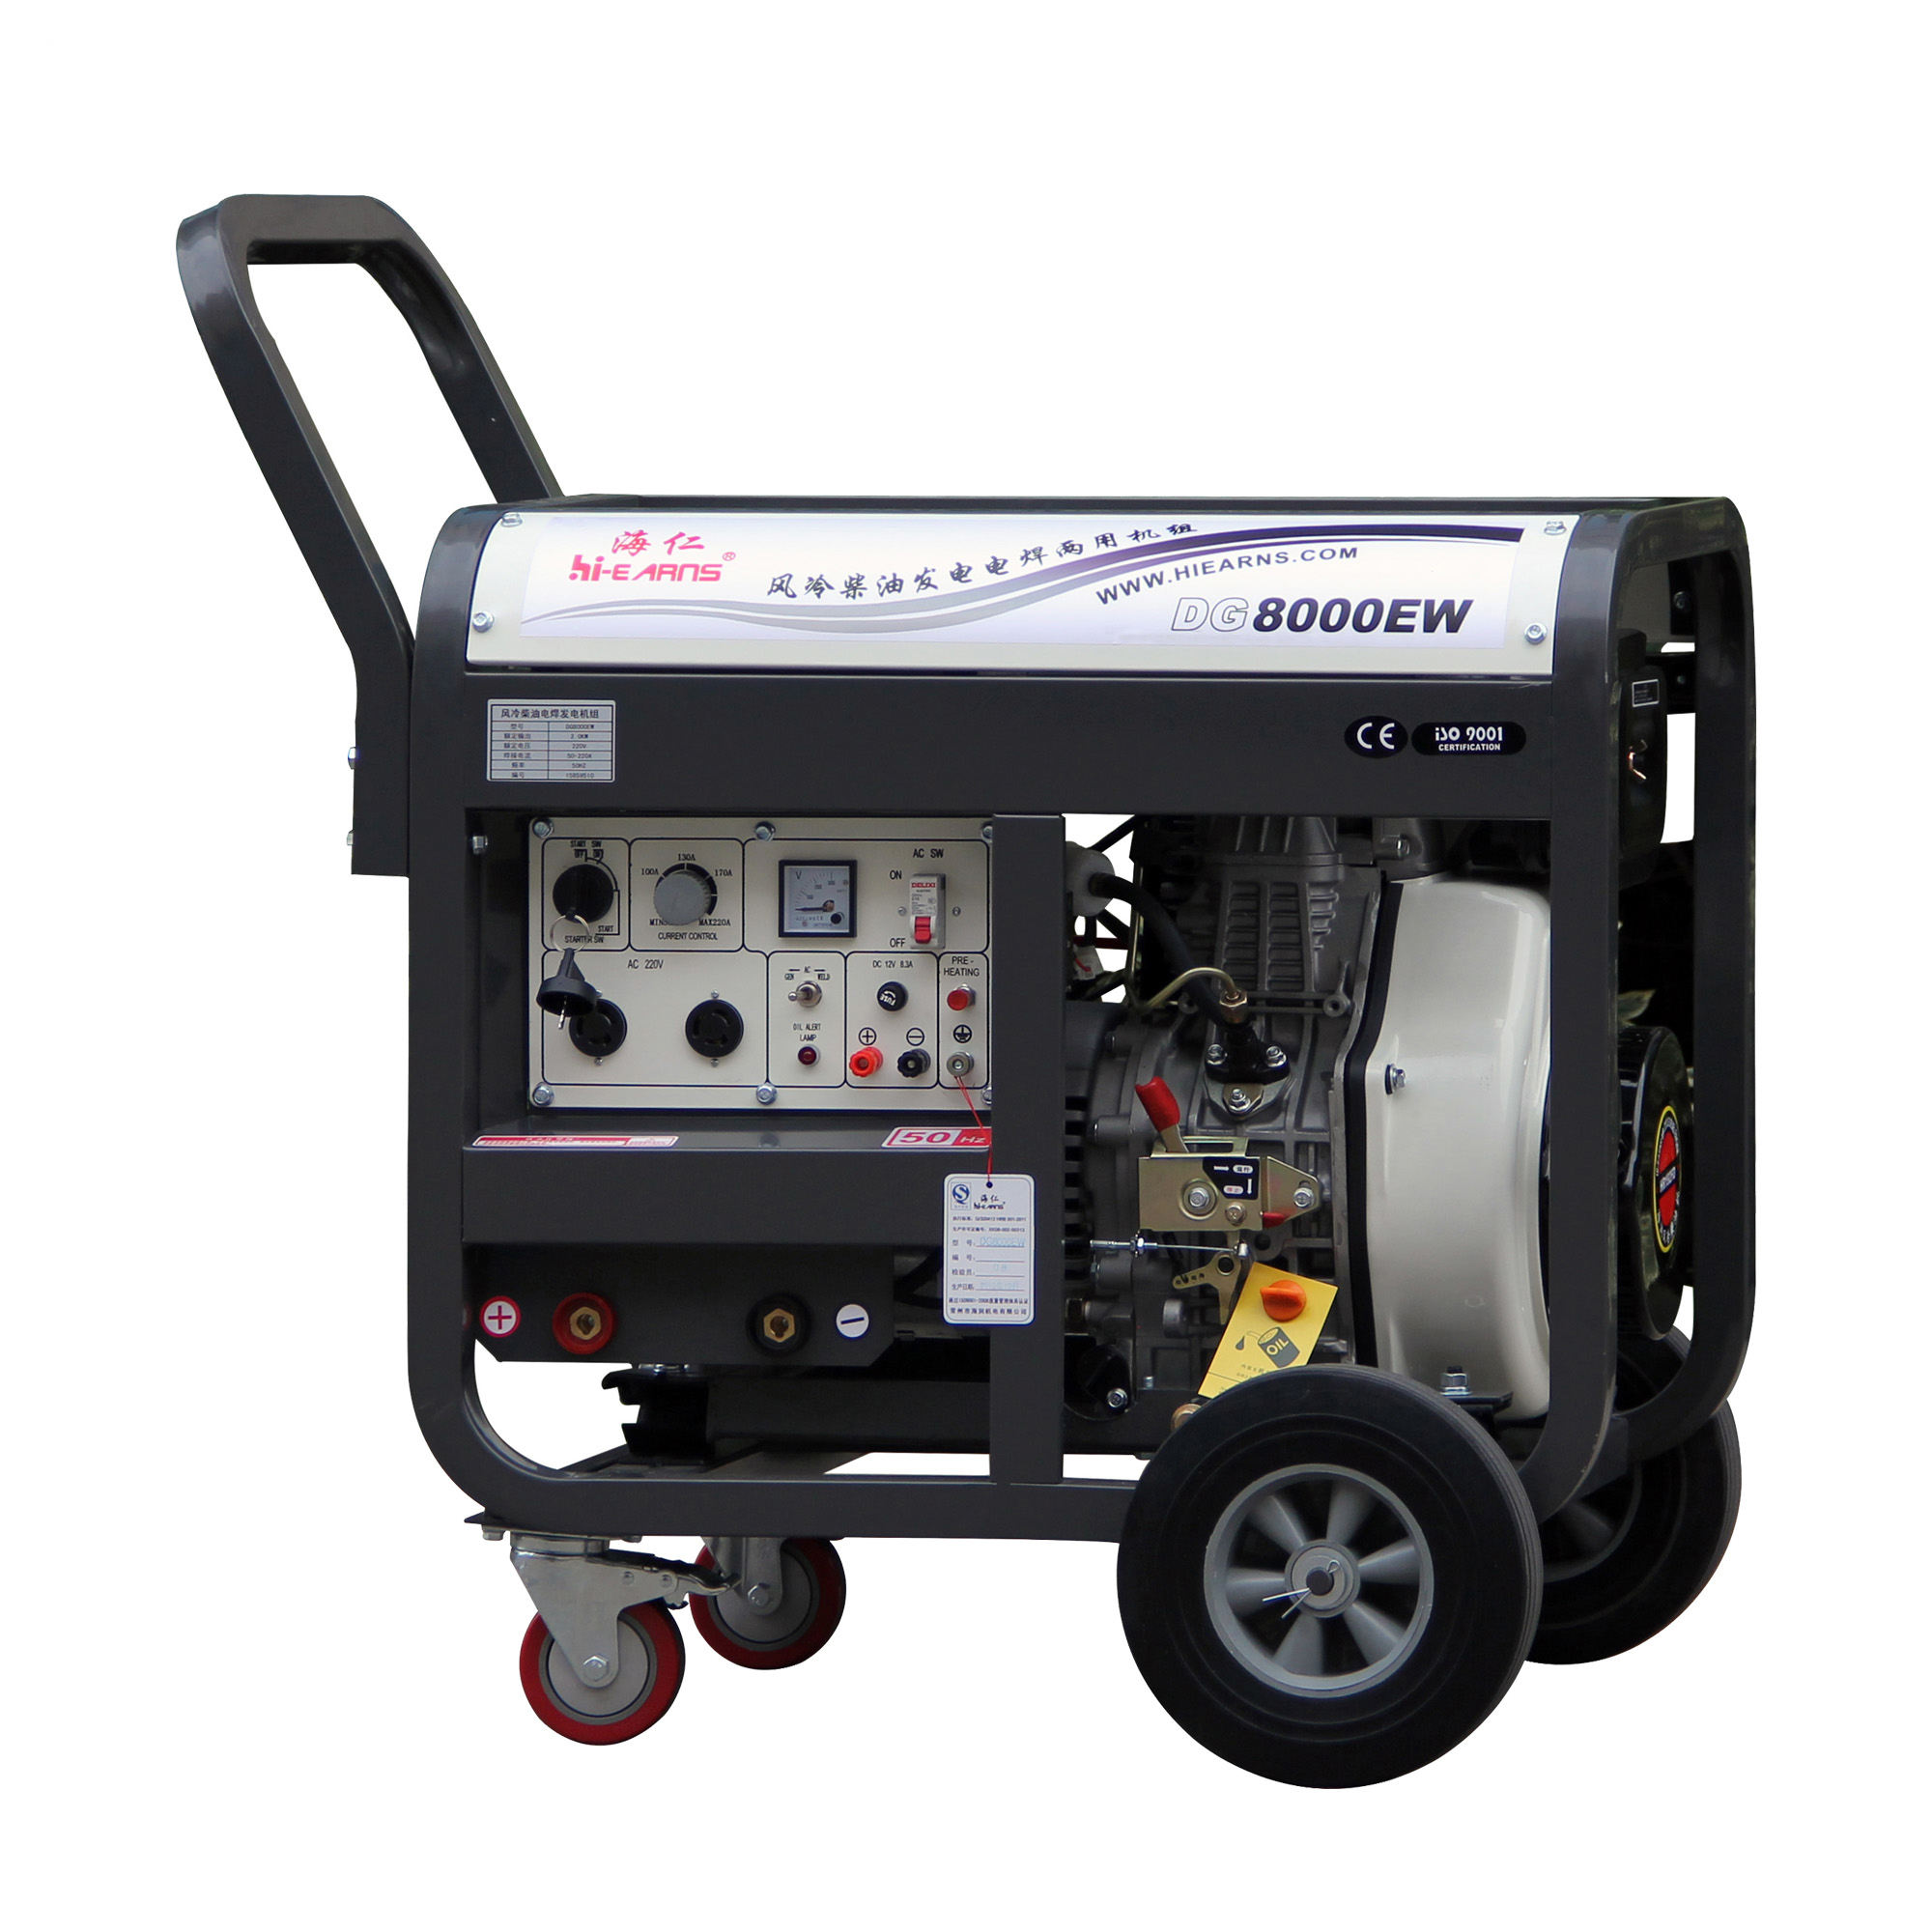 220A welding current diesel welding generator machine